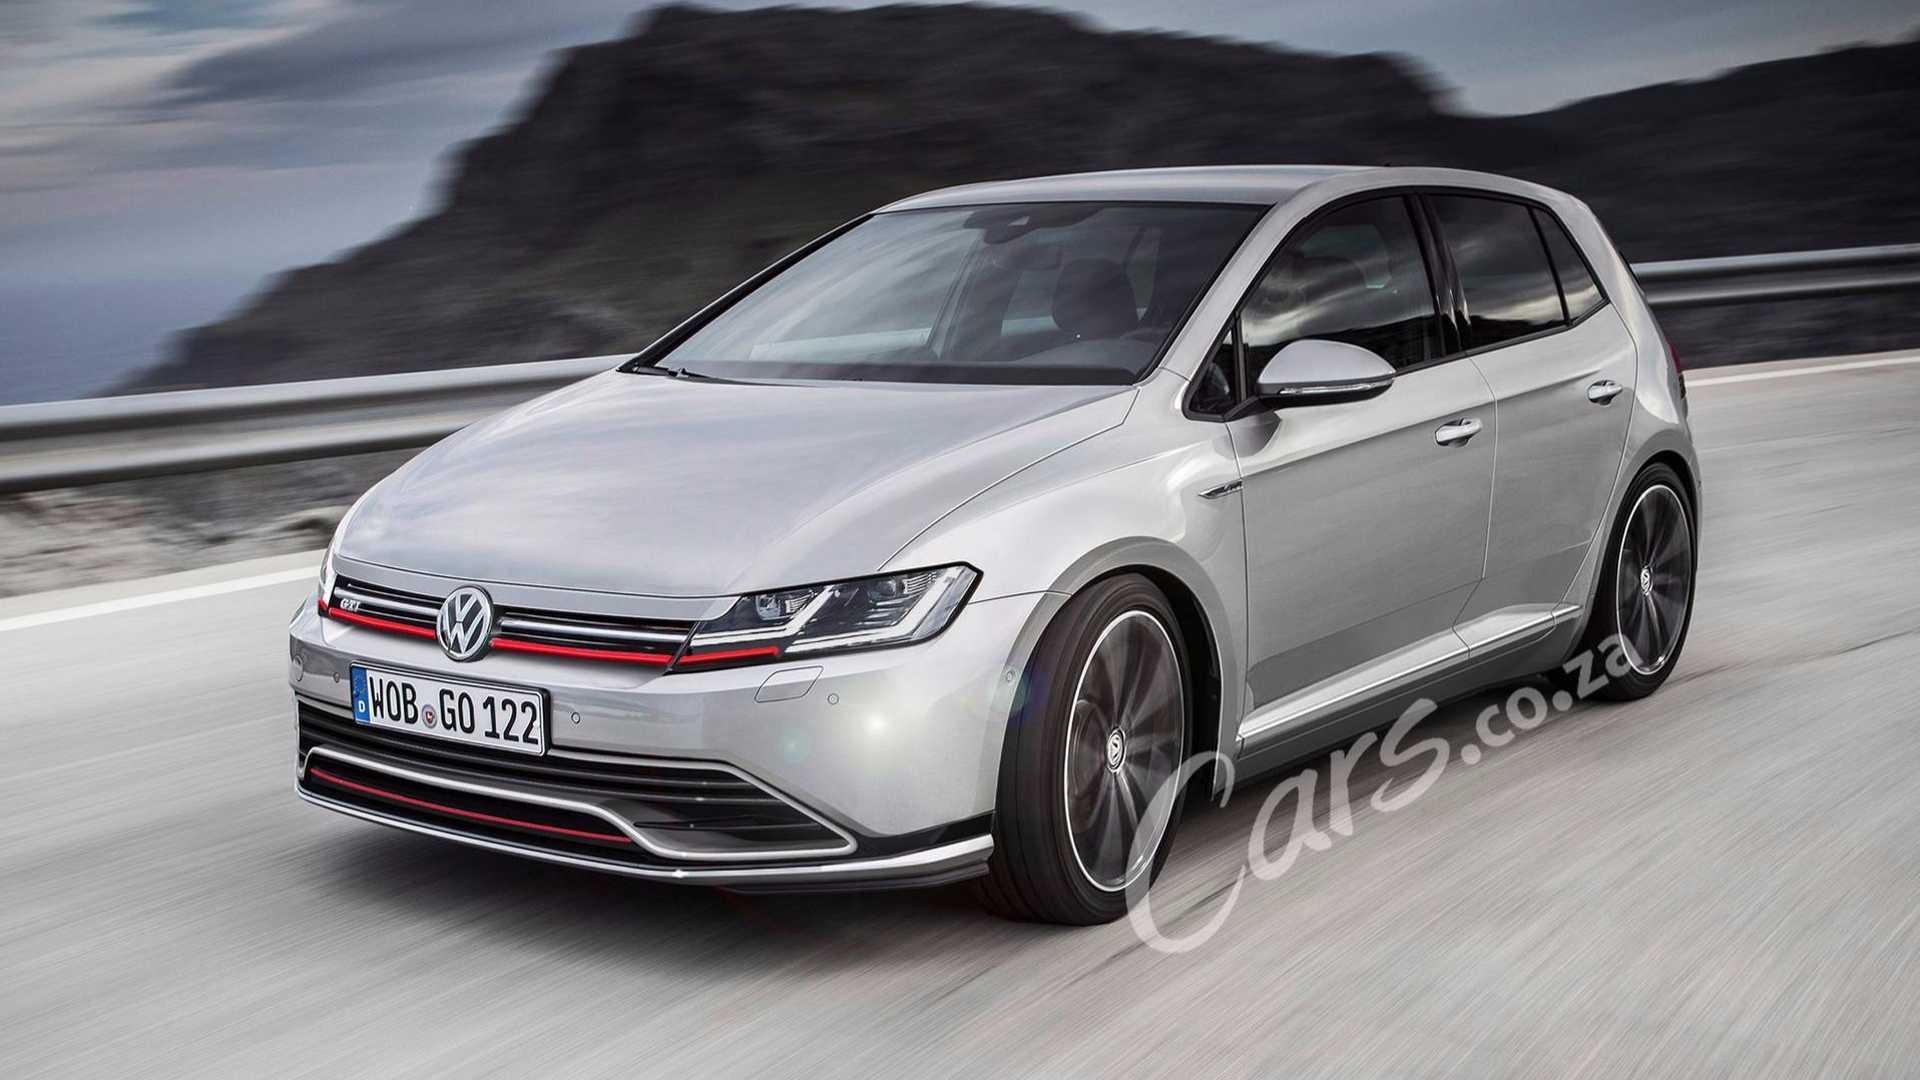 88 All New Vw 2020 Car Configurations for Vw 2020 Car